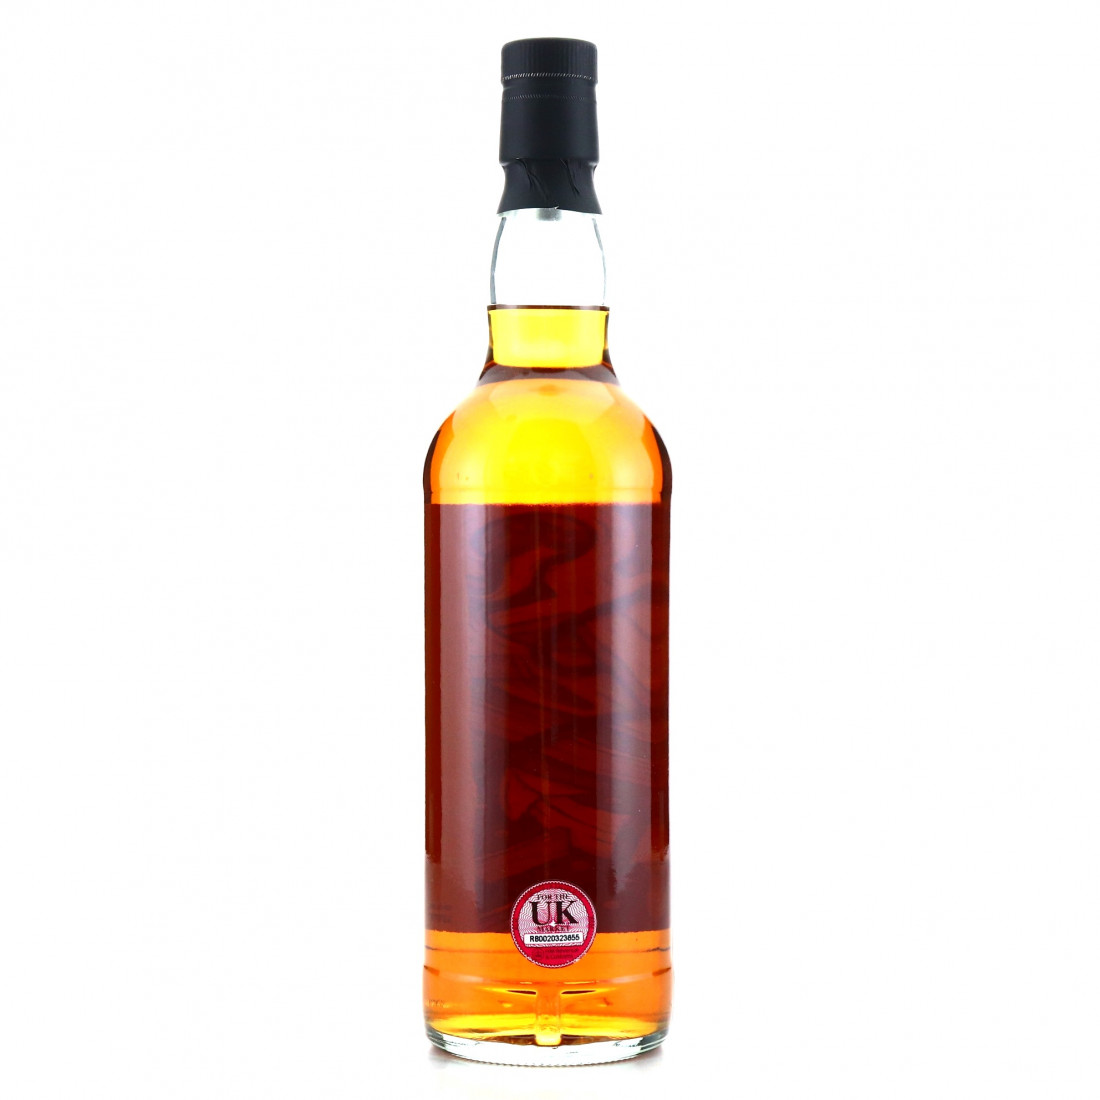 Worthy Park 2007 Thompson Brothers 12 Year Old / TWE 20th Anniversary